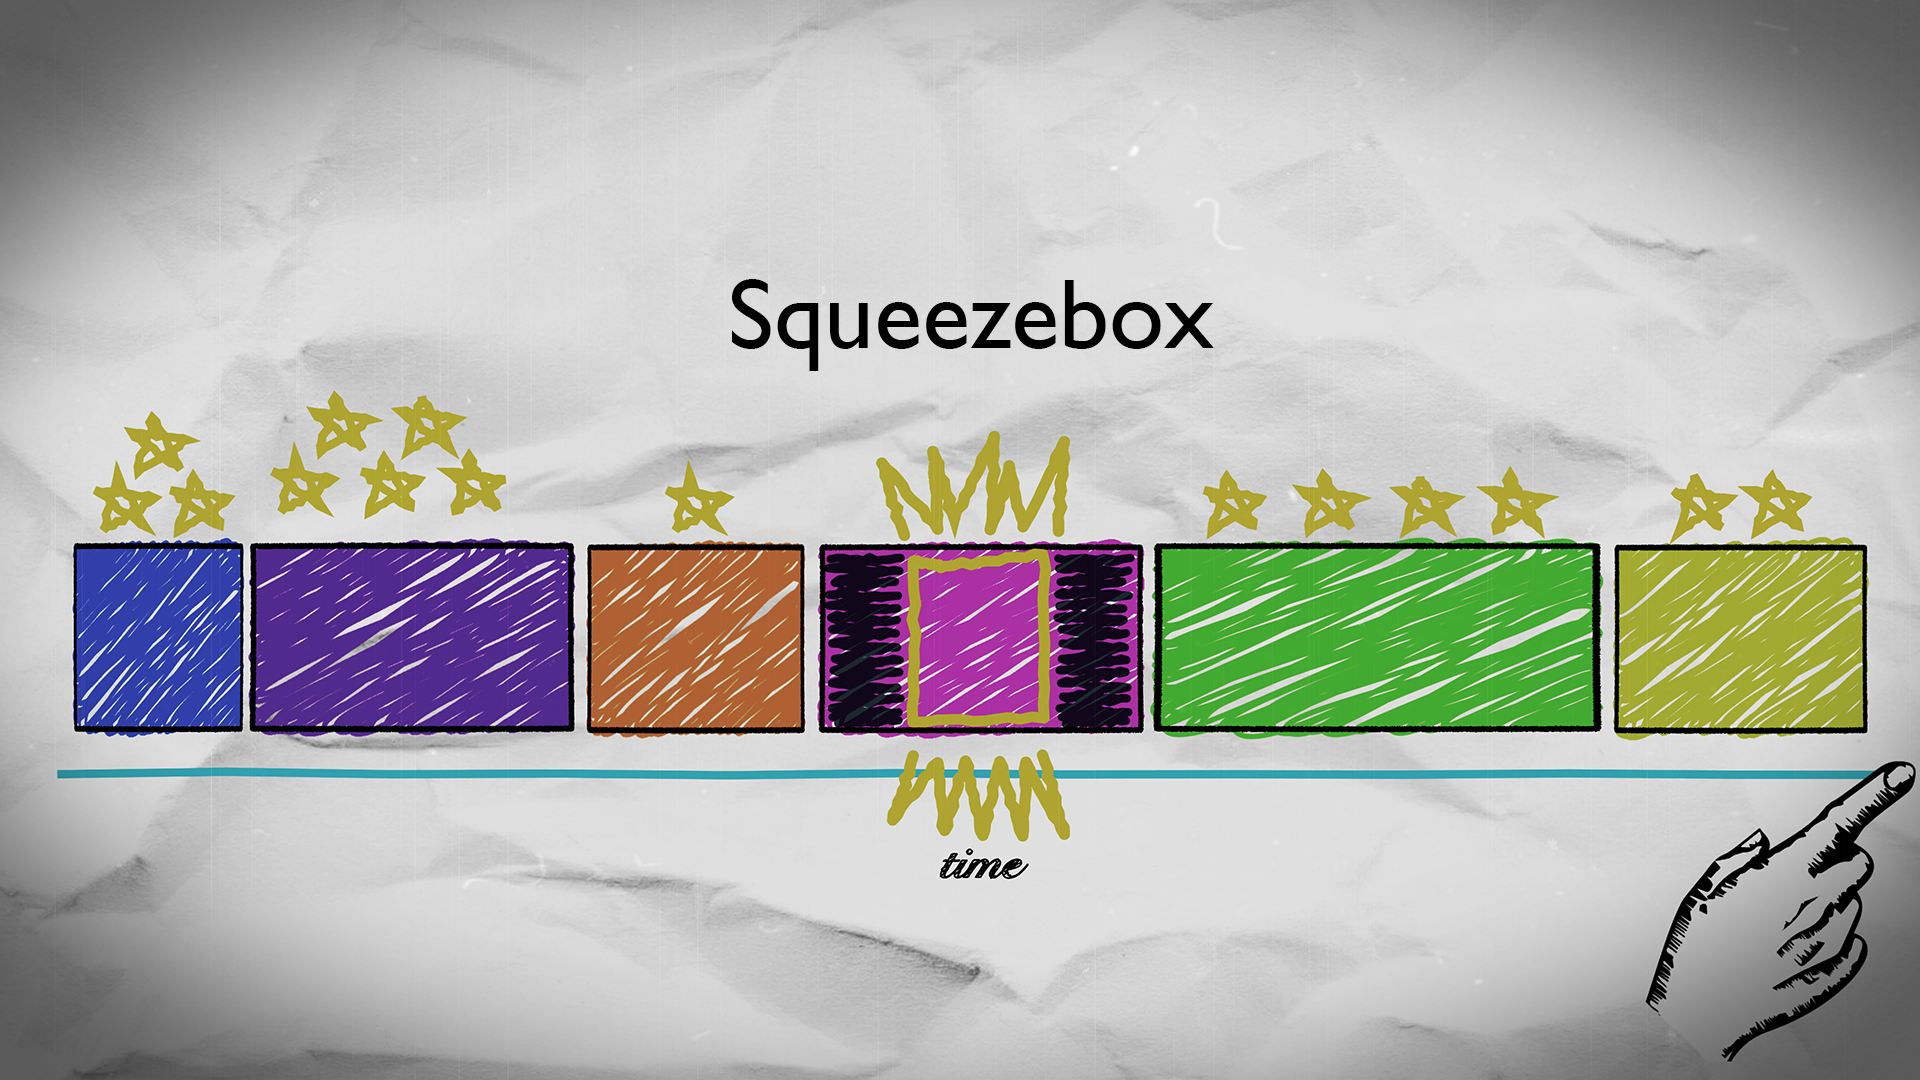 An illustration of the editing concept when using the Squeezebox tool.